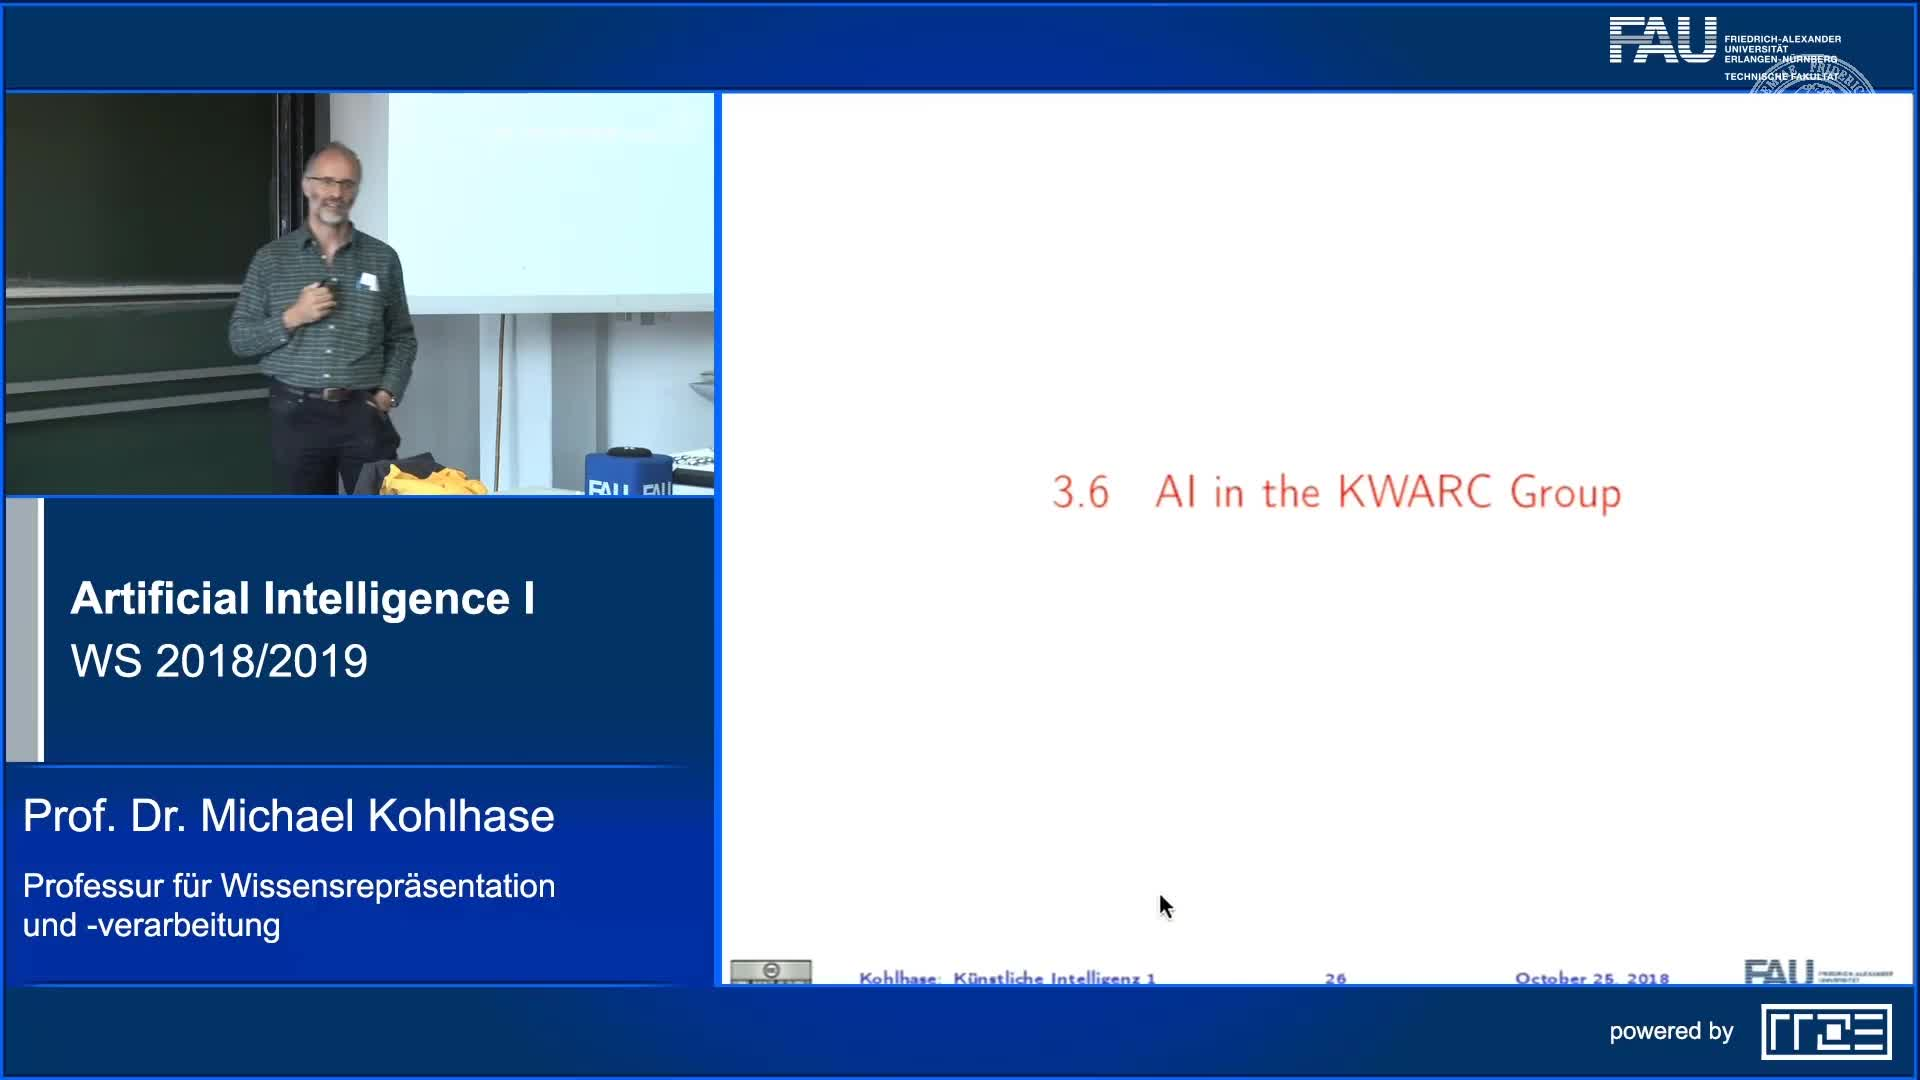 Recap: AI in the KWARC Group preview image